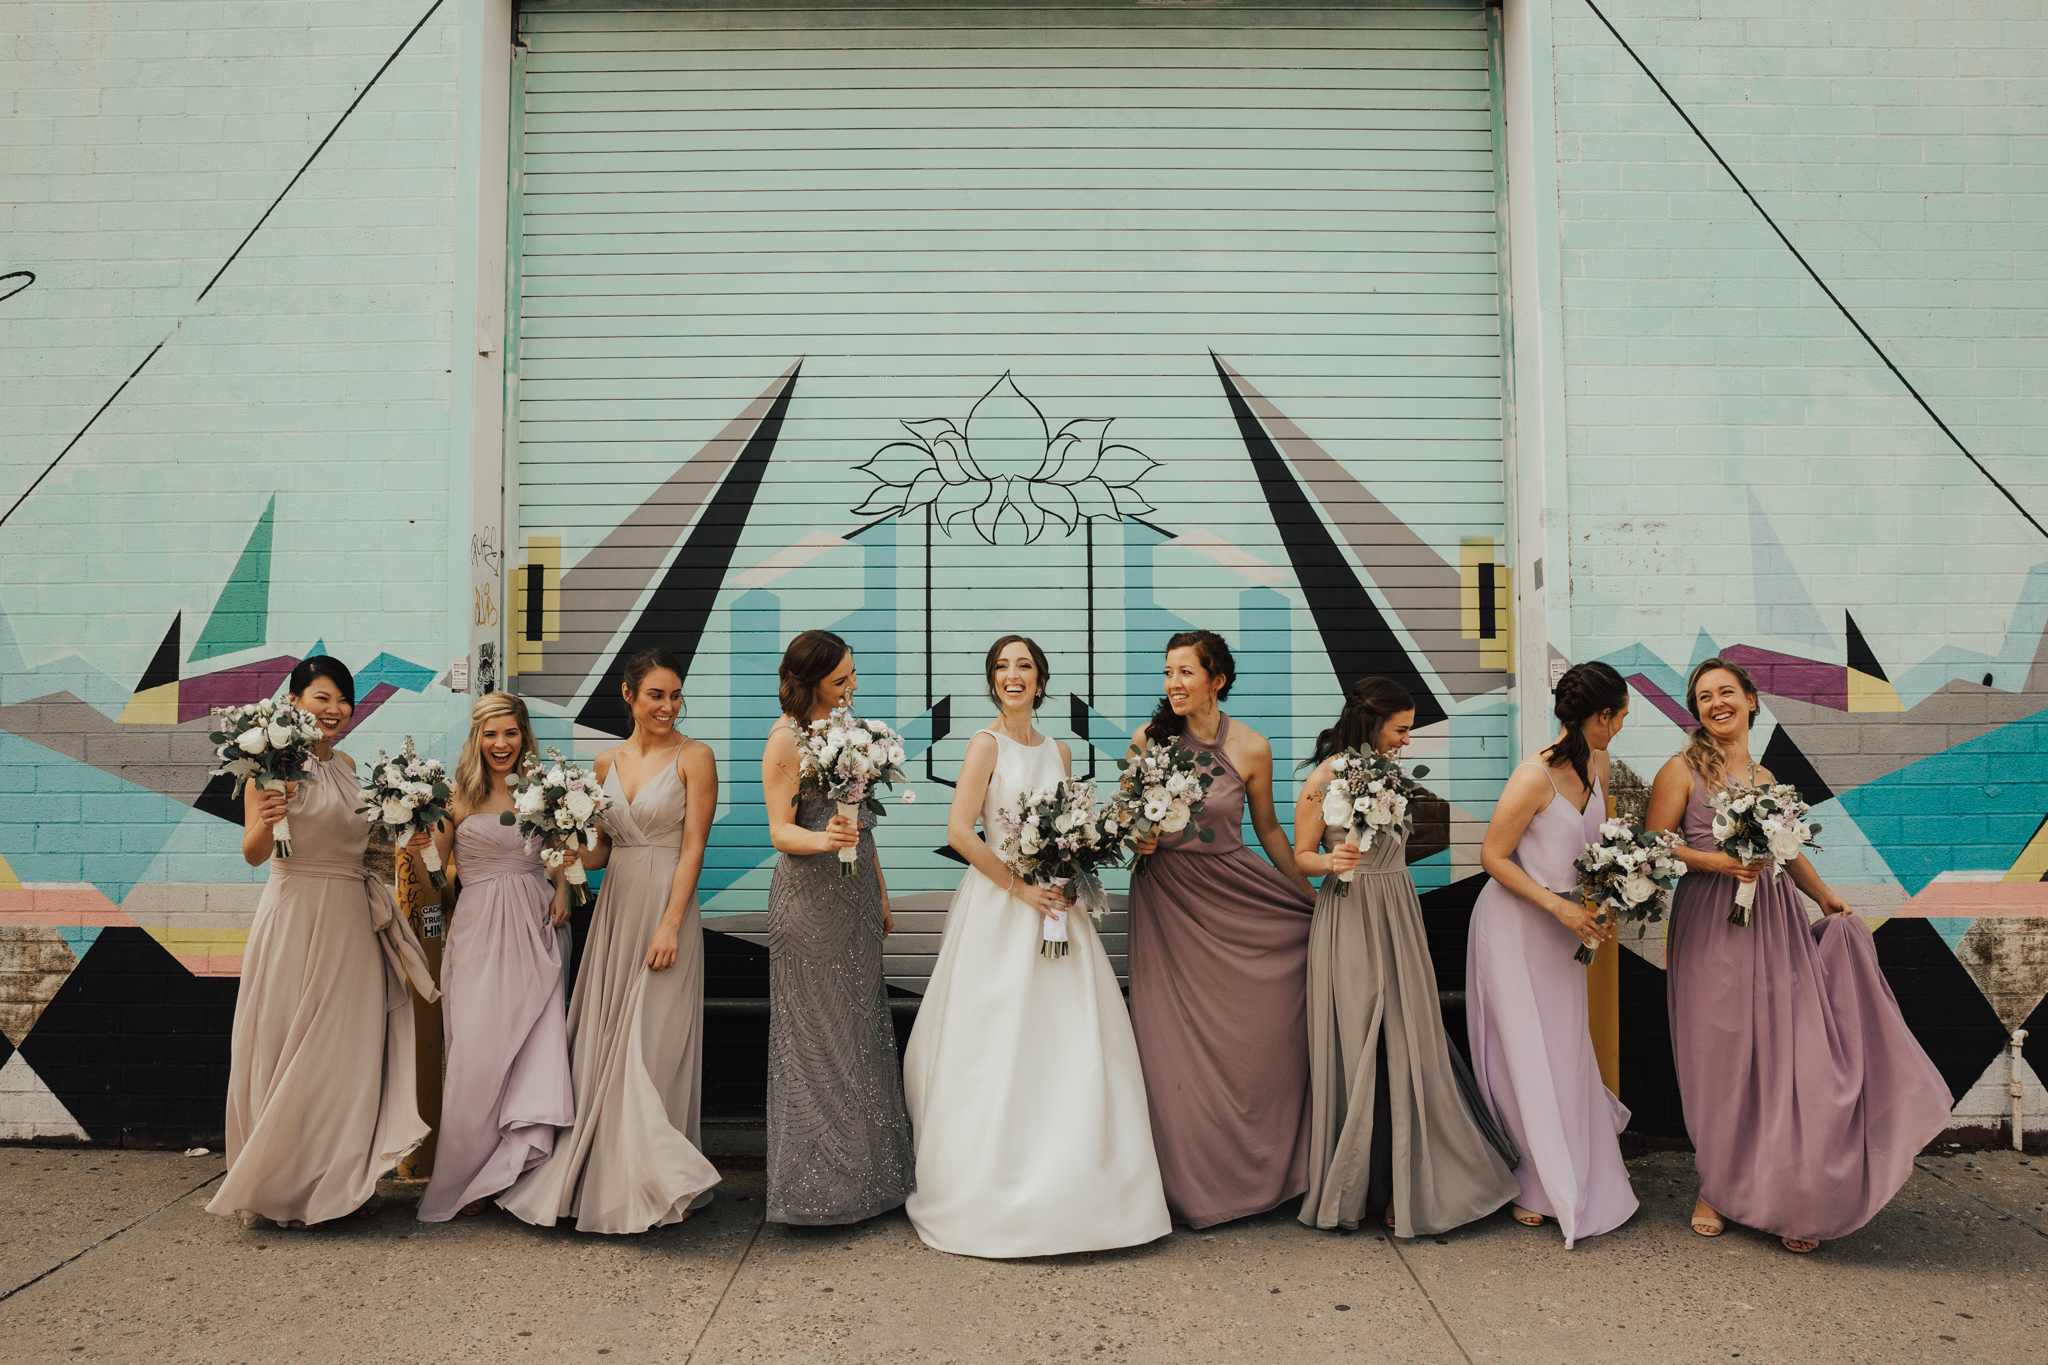 dobbinst_wedding-71.jpgbrooklyn industrial wedding